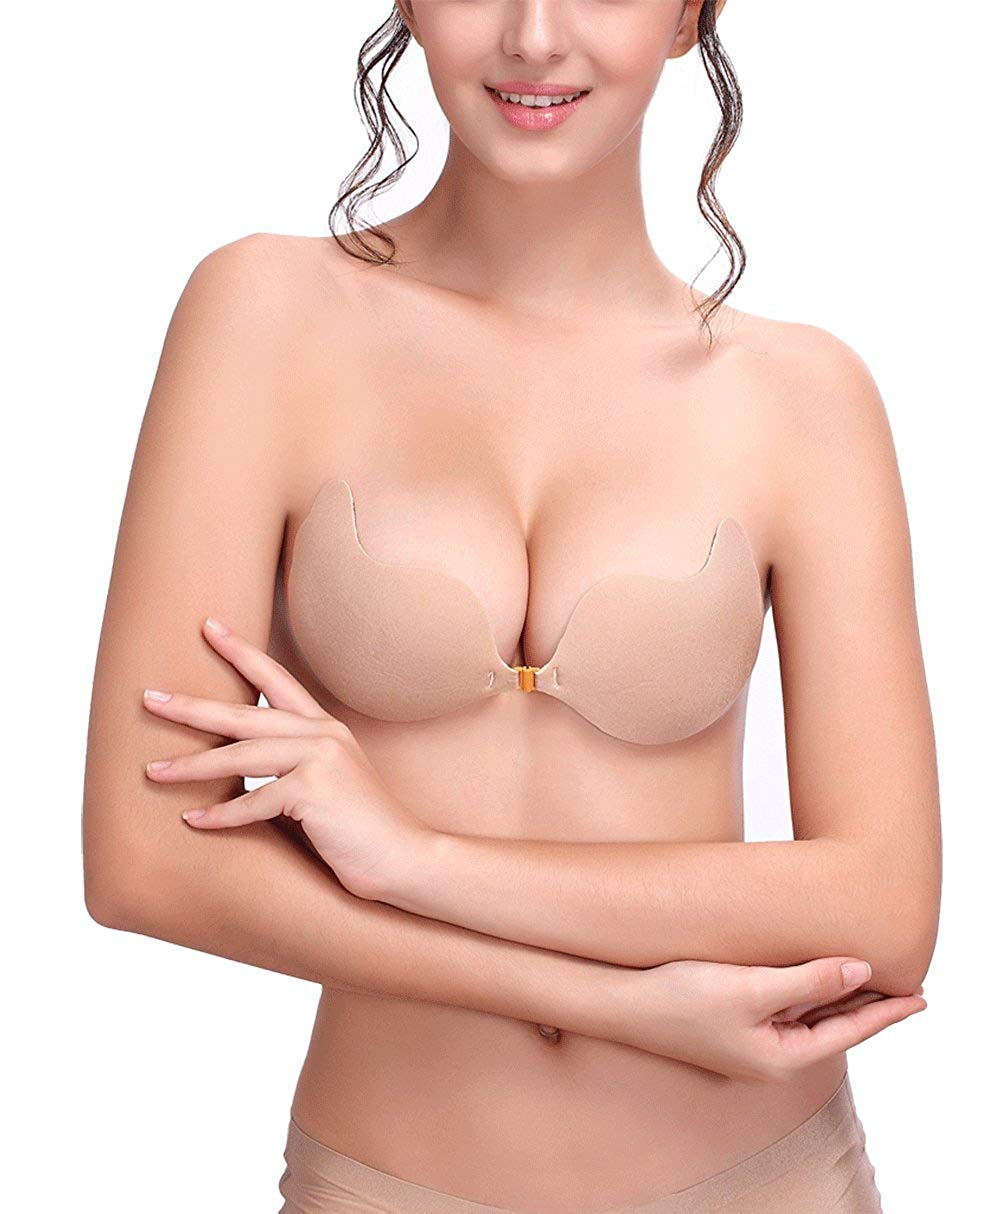 e0257a8c2abc1 Get Quotations · AVIGOR Women s Strapless Sticky Bra Self Adhesive Silicone  Invisible Bras Reusable Sticky Backless Bras